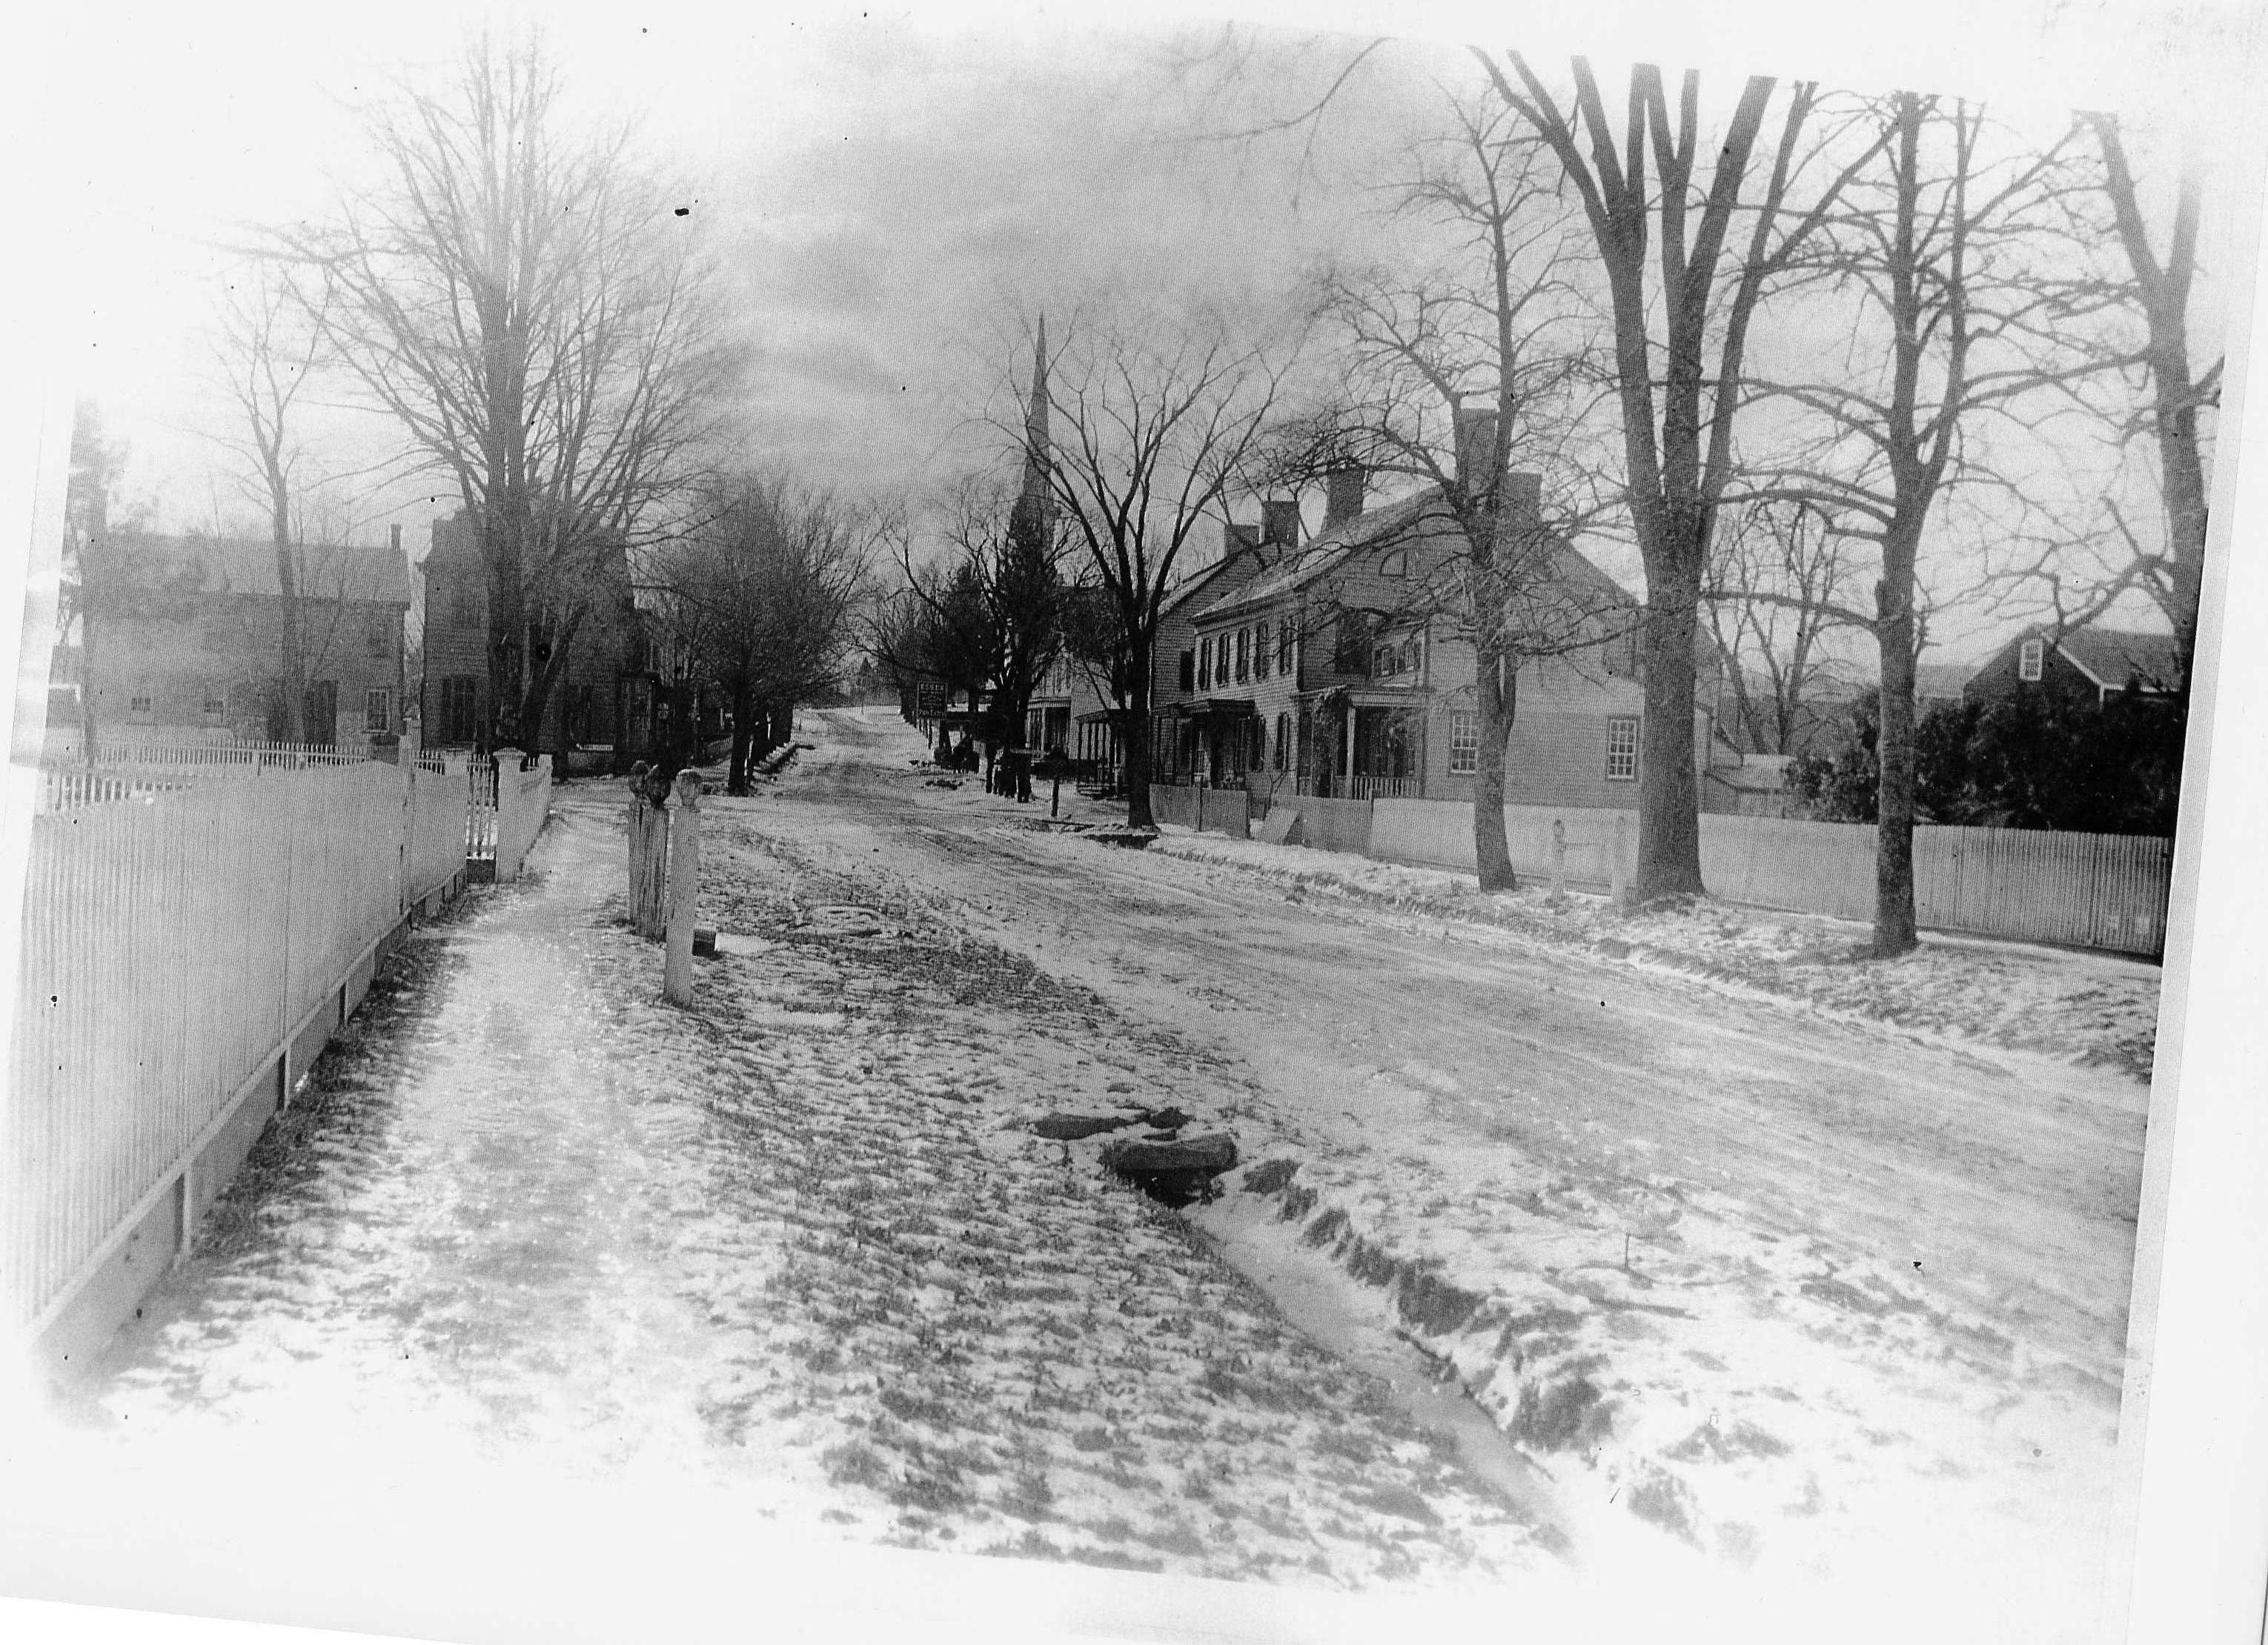 Historic/MainStNewGermantown.jpg